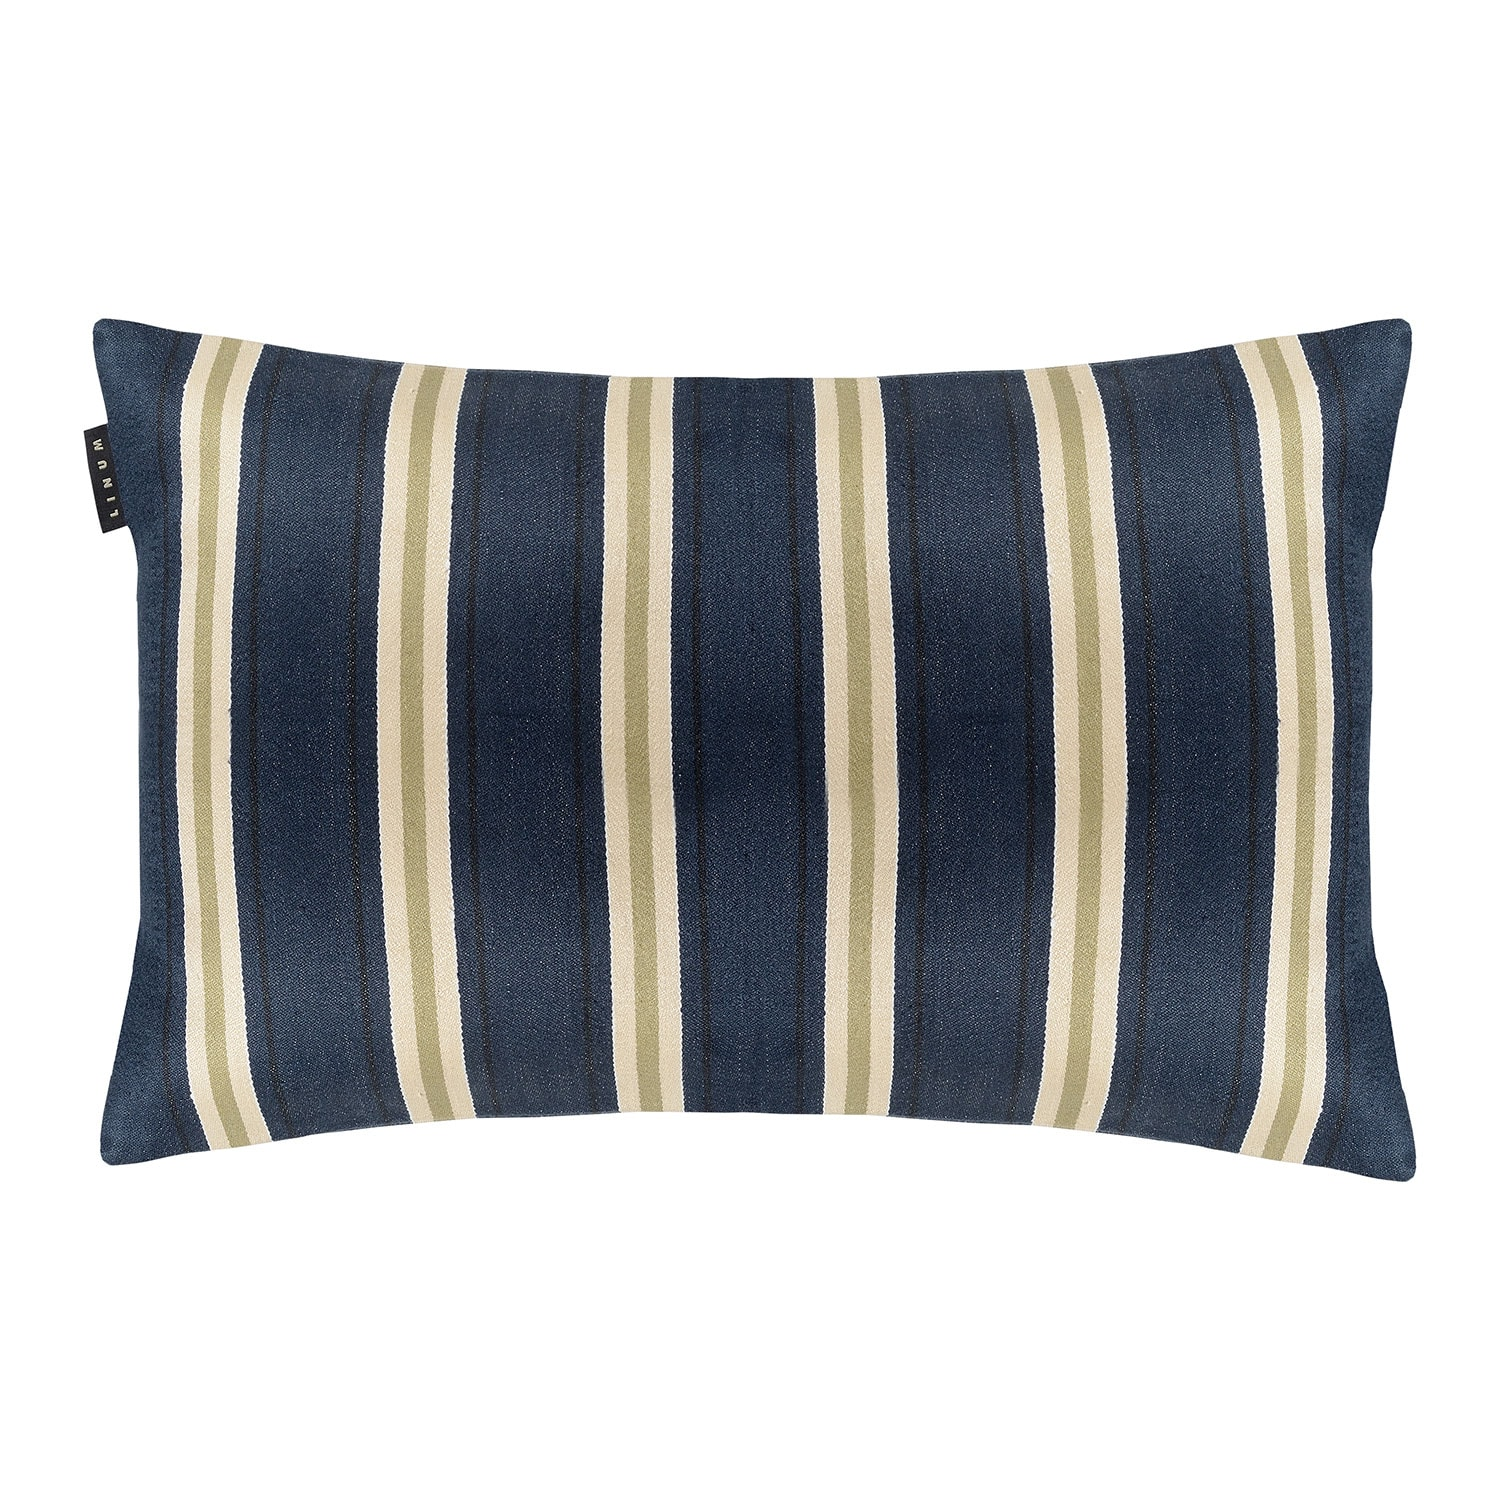 Lucca Kissenbezug 40x60cm Dark Grey Blue Linum Royaldesign De